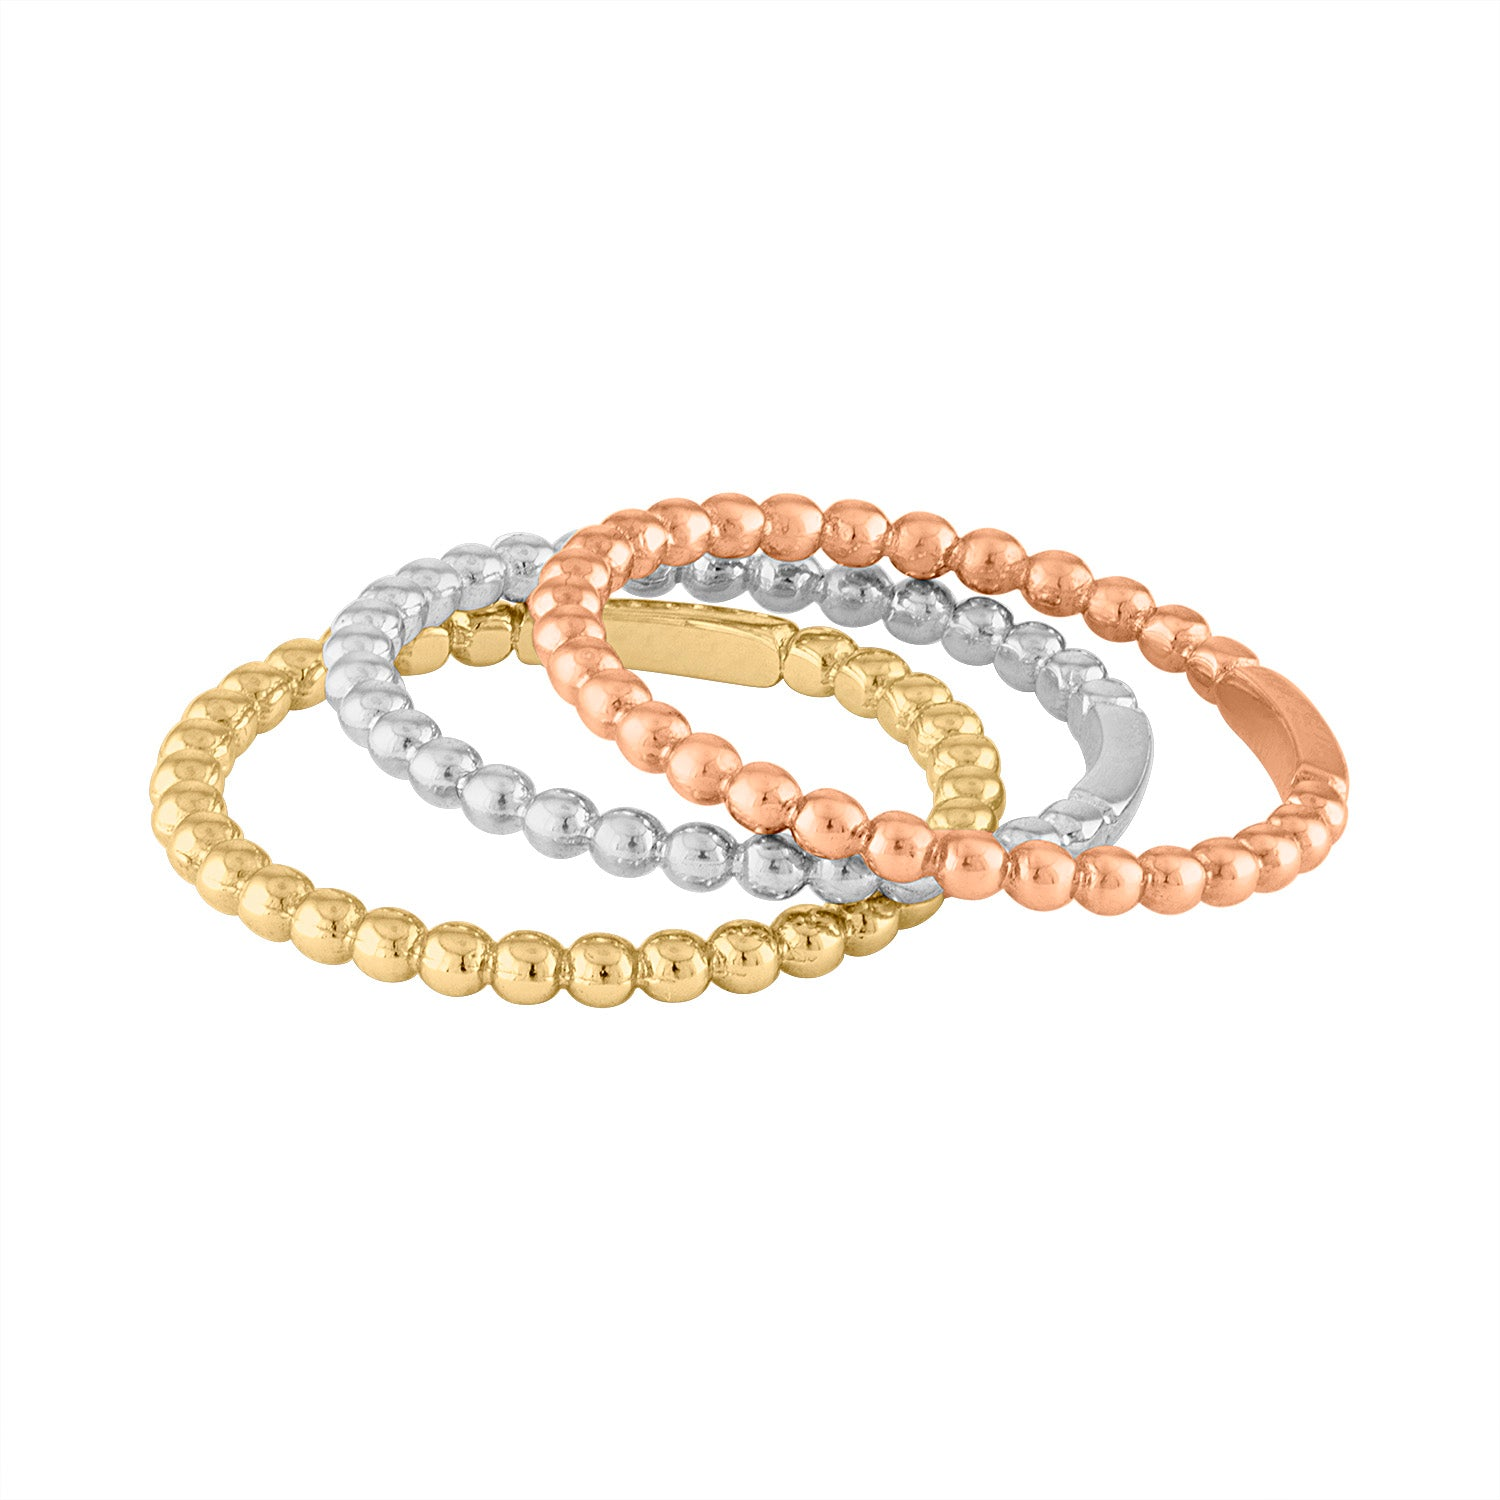 14KT GOLD SET OF 3 BEAD RINGS